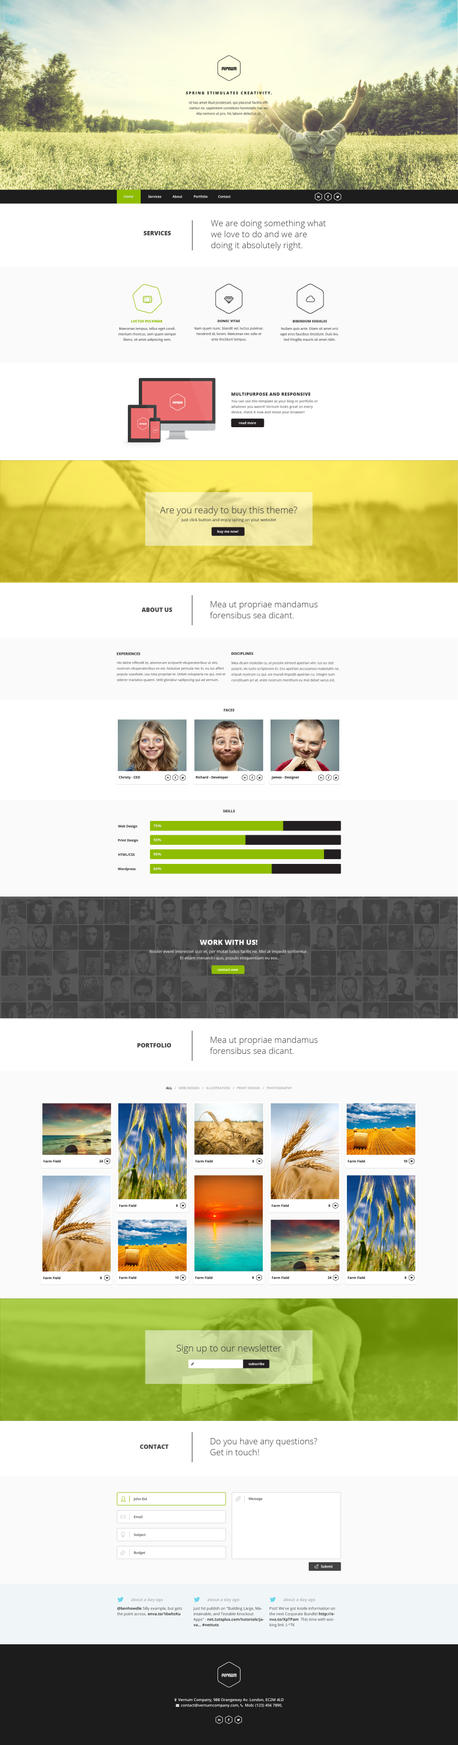 Vernum - One Page Multipurpose PSD Template by DarkStaLkeRR